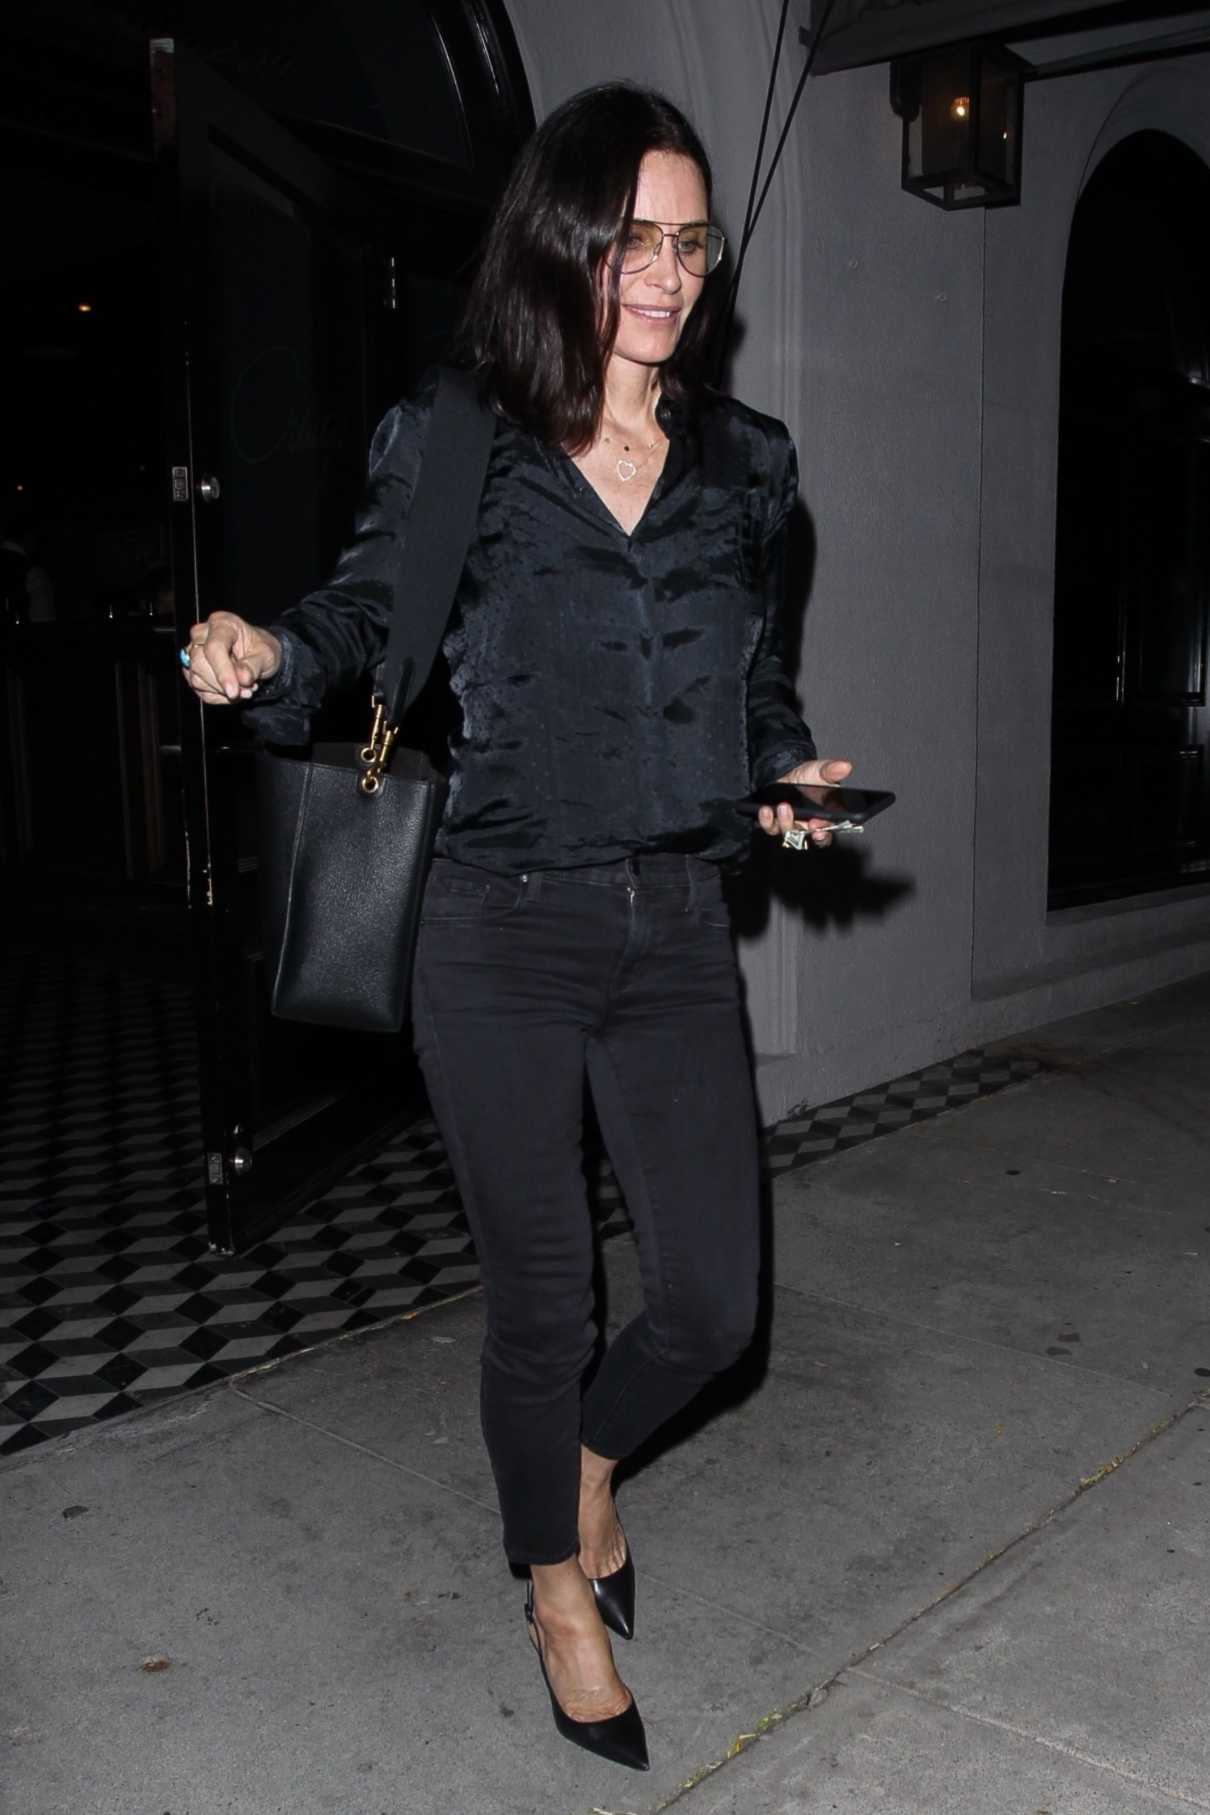 Courteney Cox in a Black Jeans